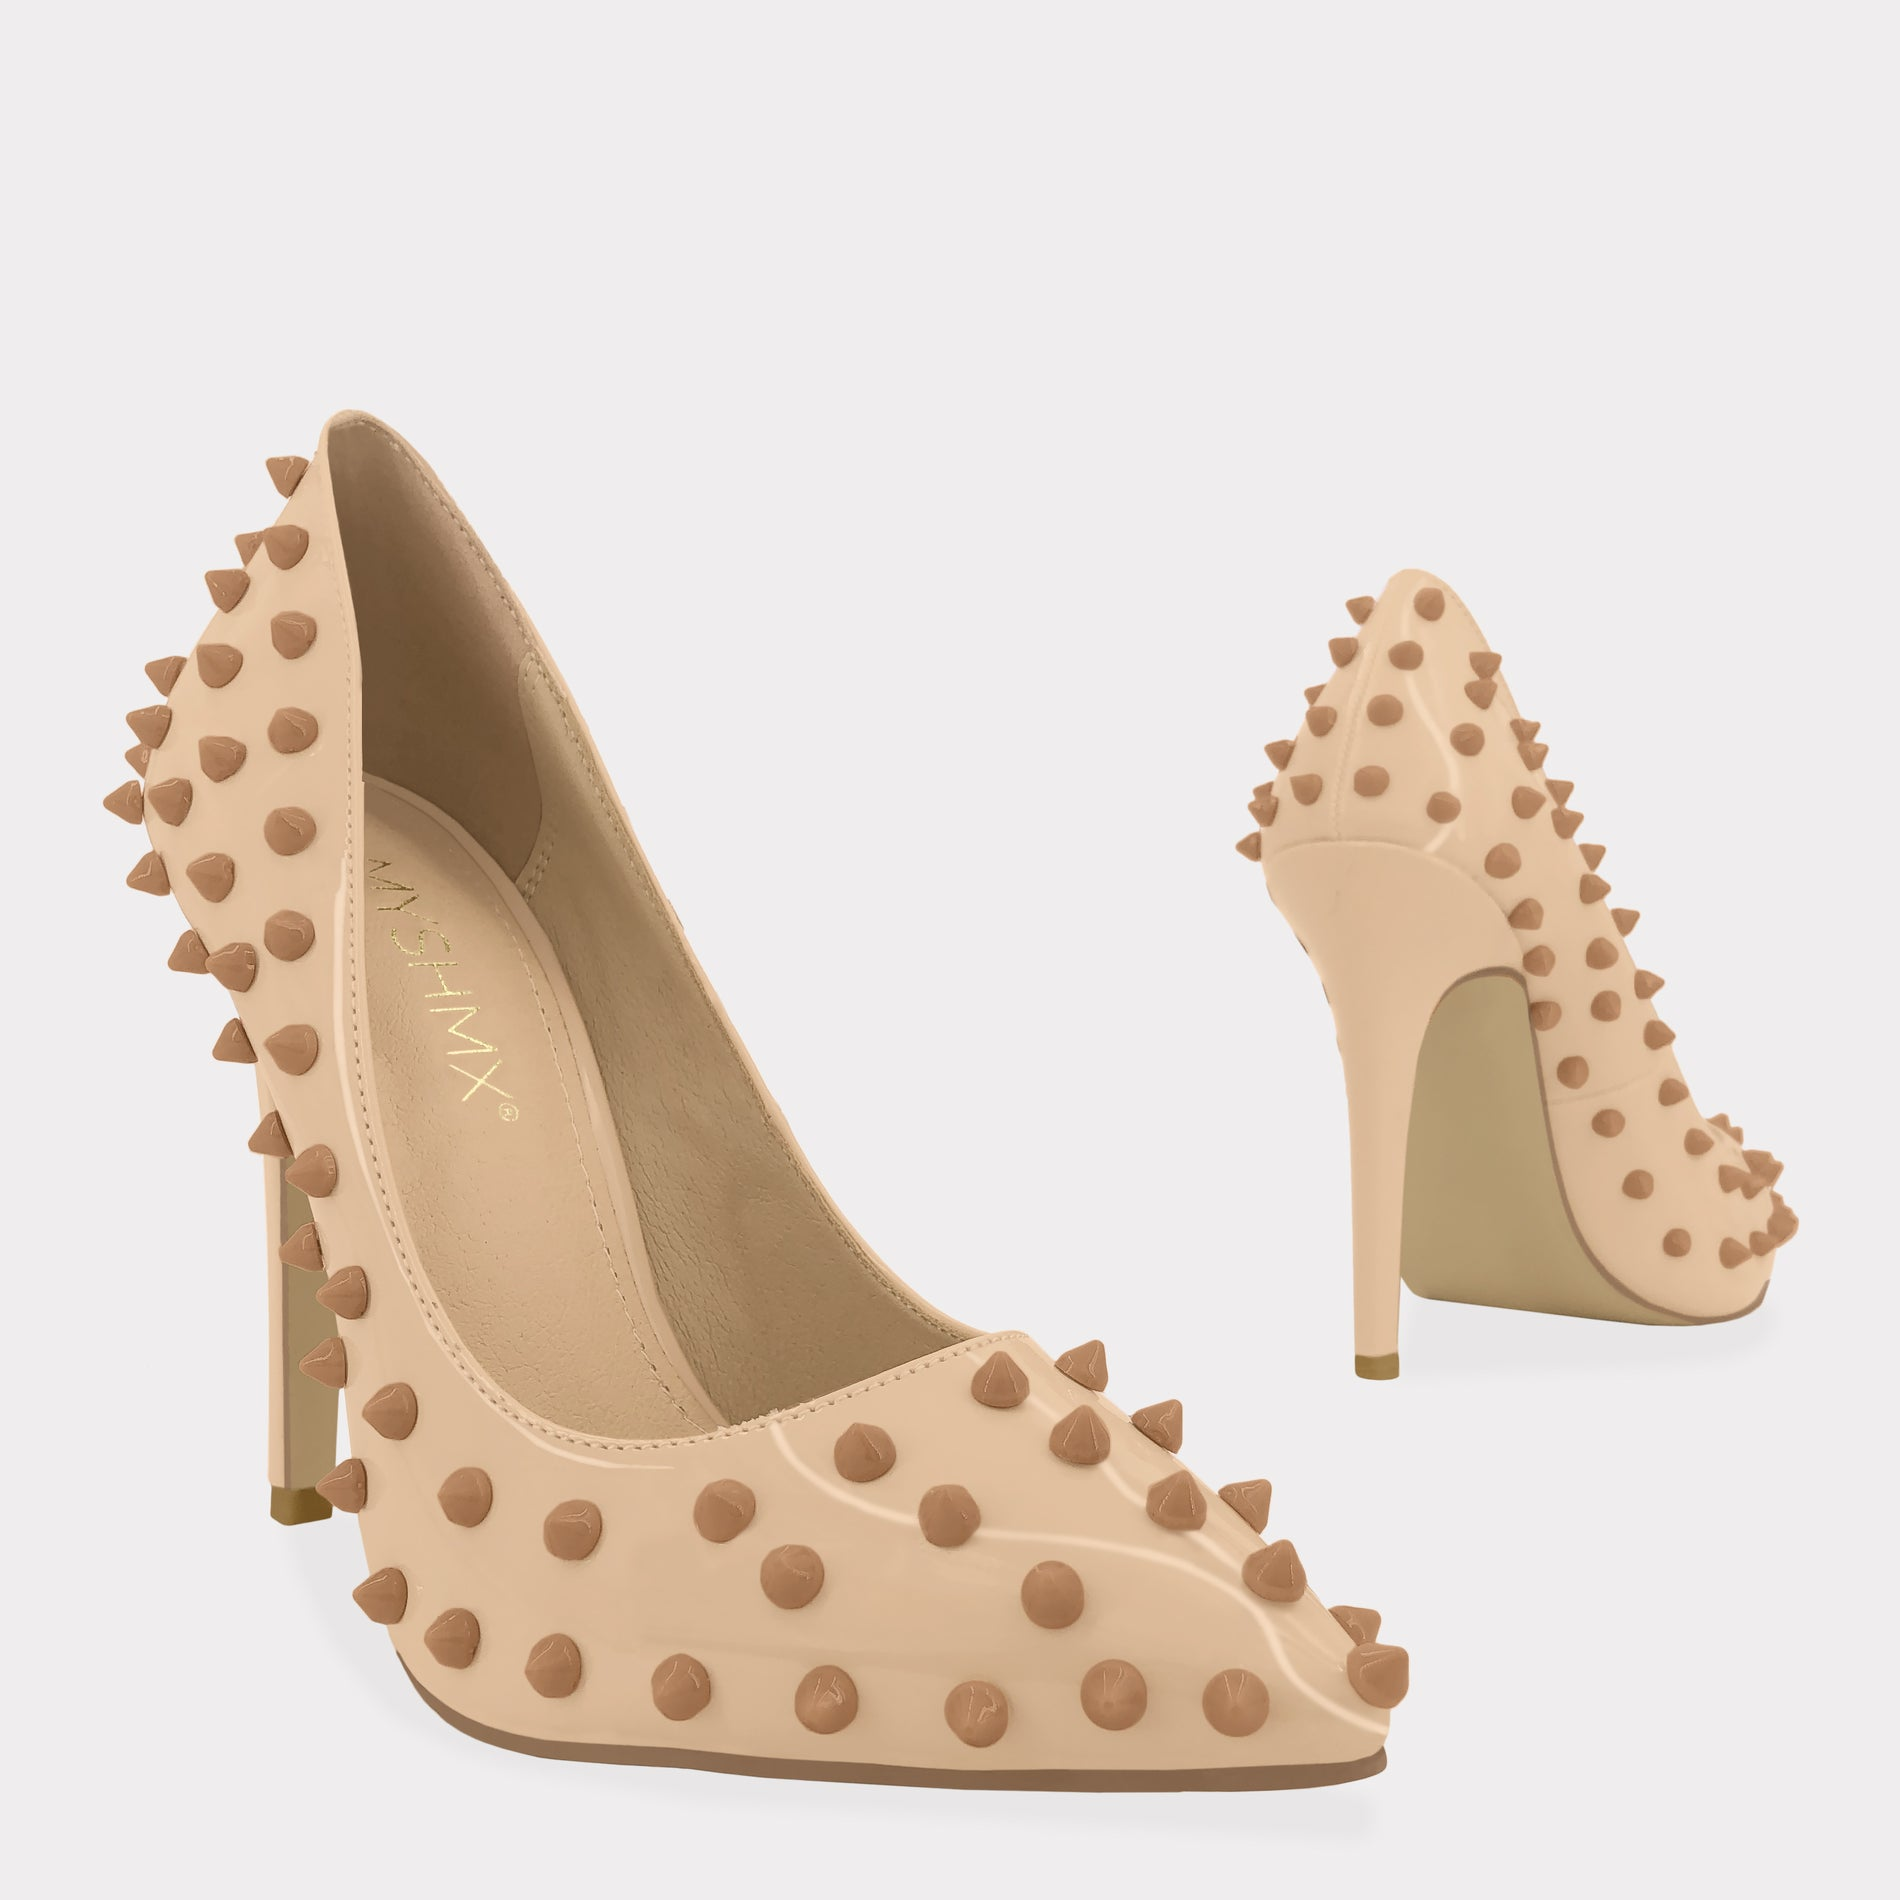 ROXY NUDE - MY SHOES MEXICO